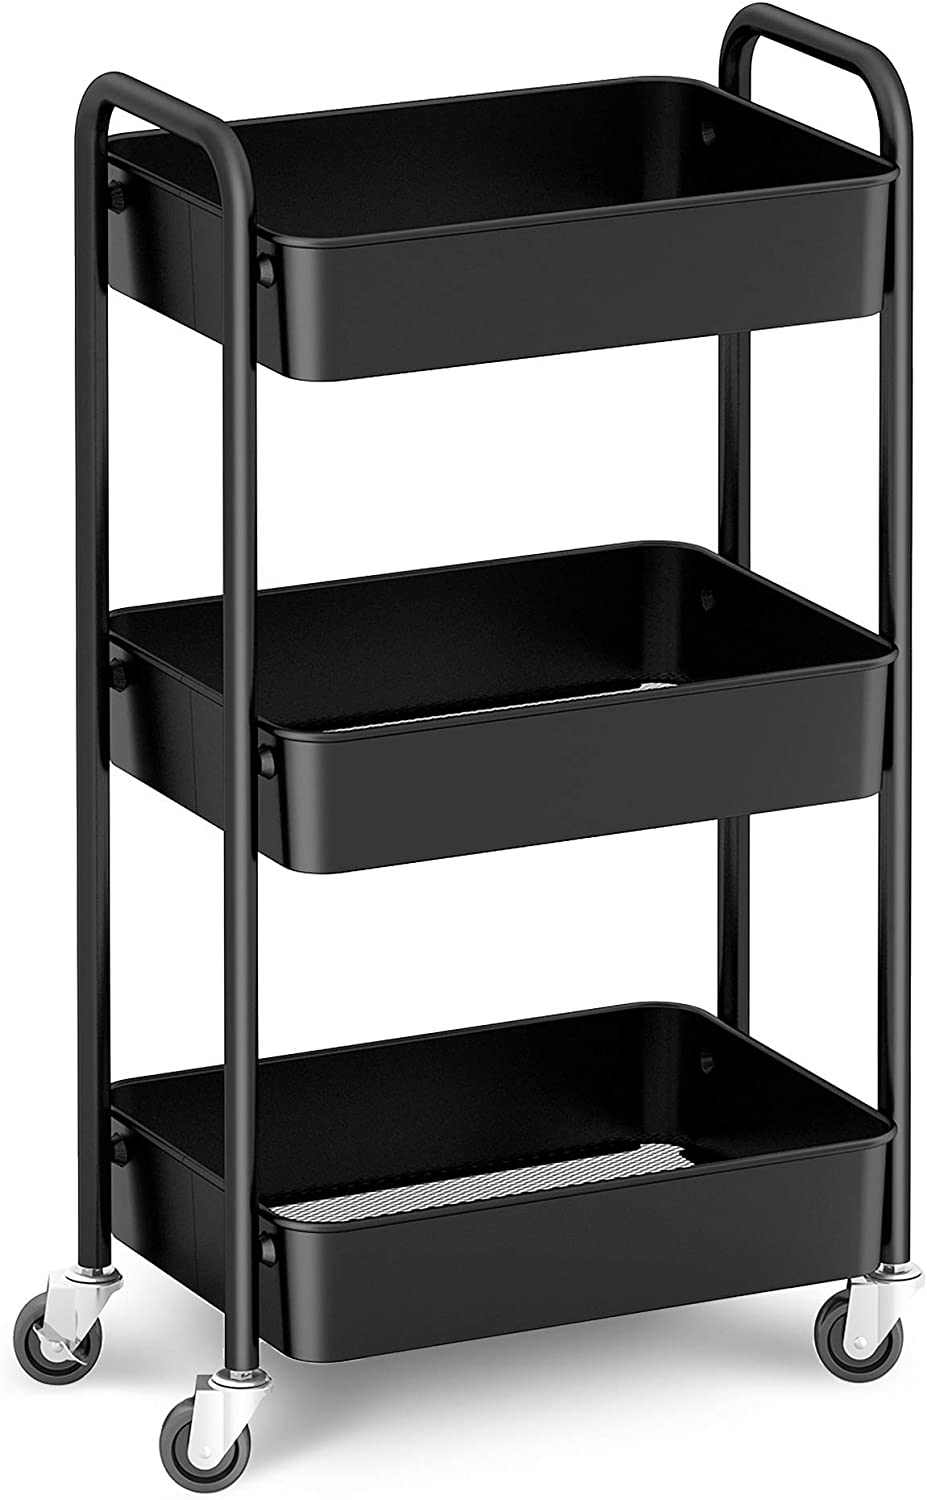 CAXXA Challenge the lowest price 3-Tier Rolling Metal Storage Mobile Utility Organizer Ca - Deluxe